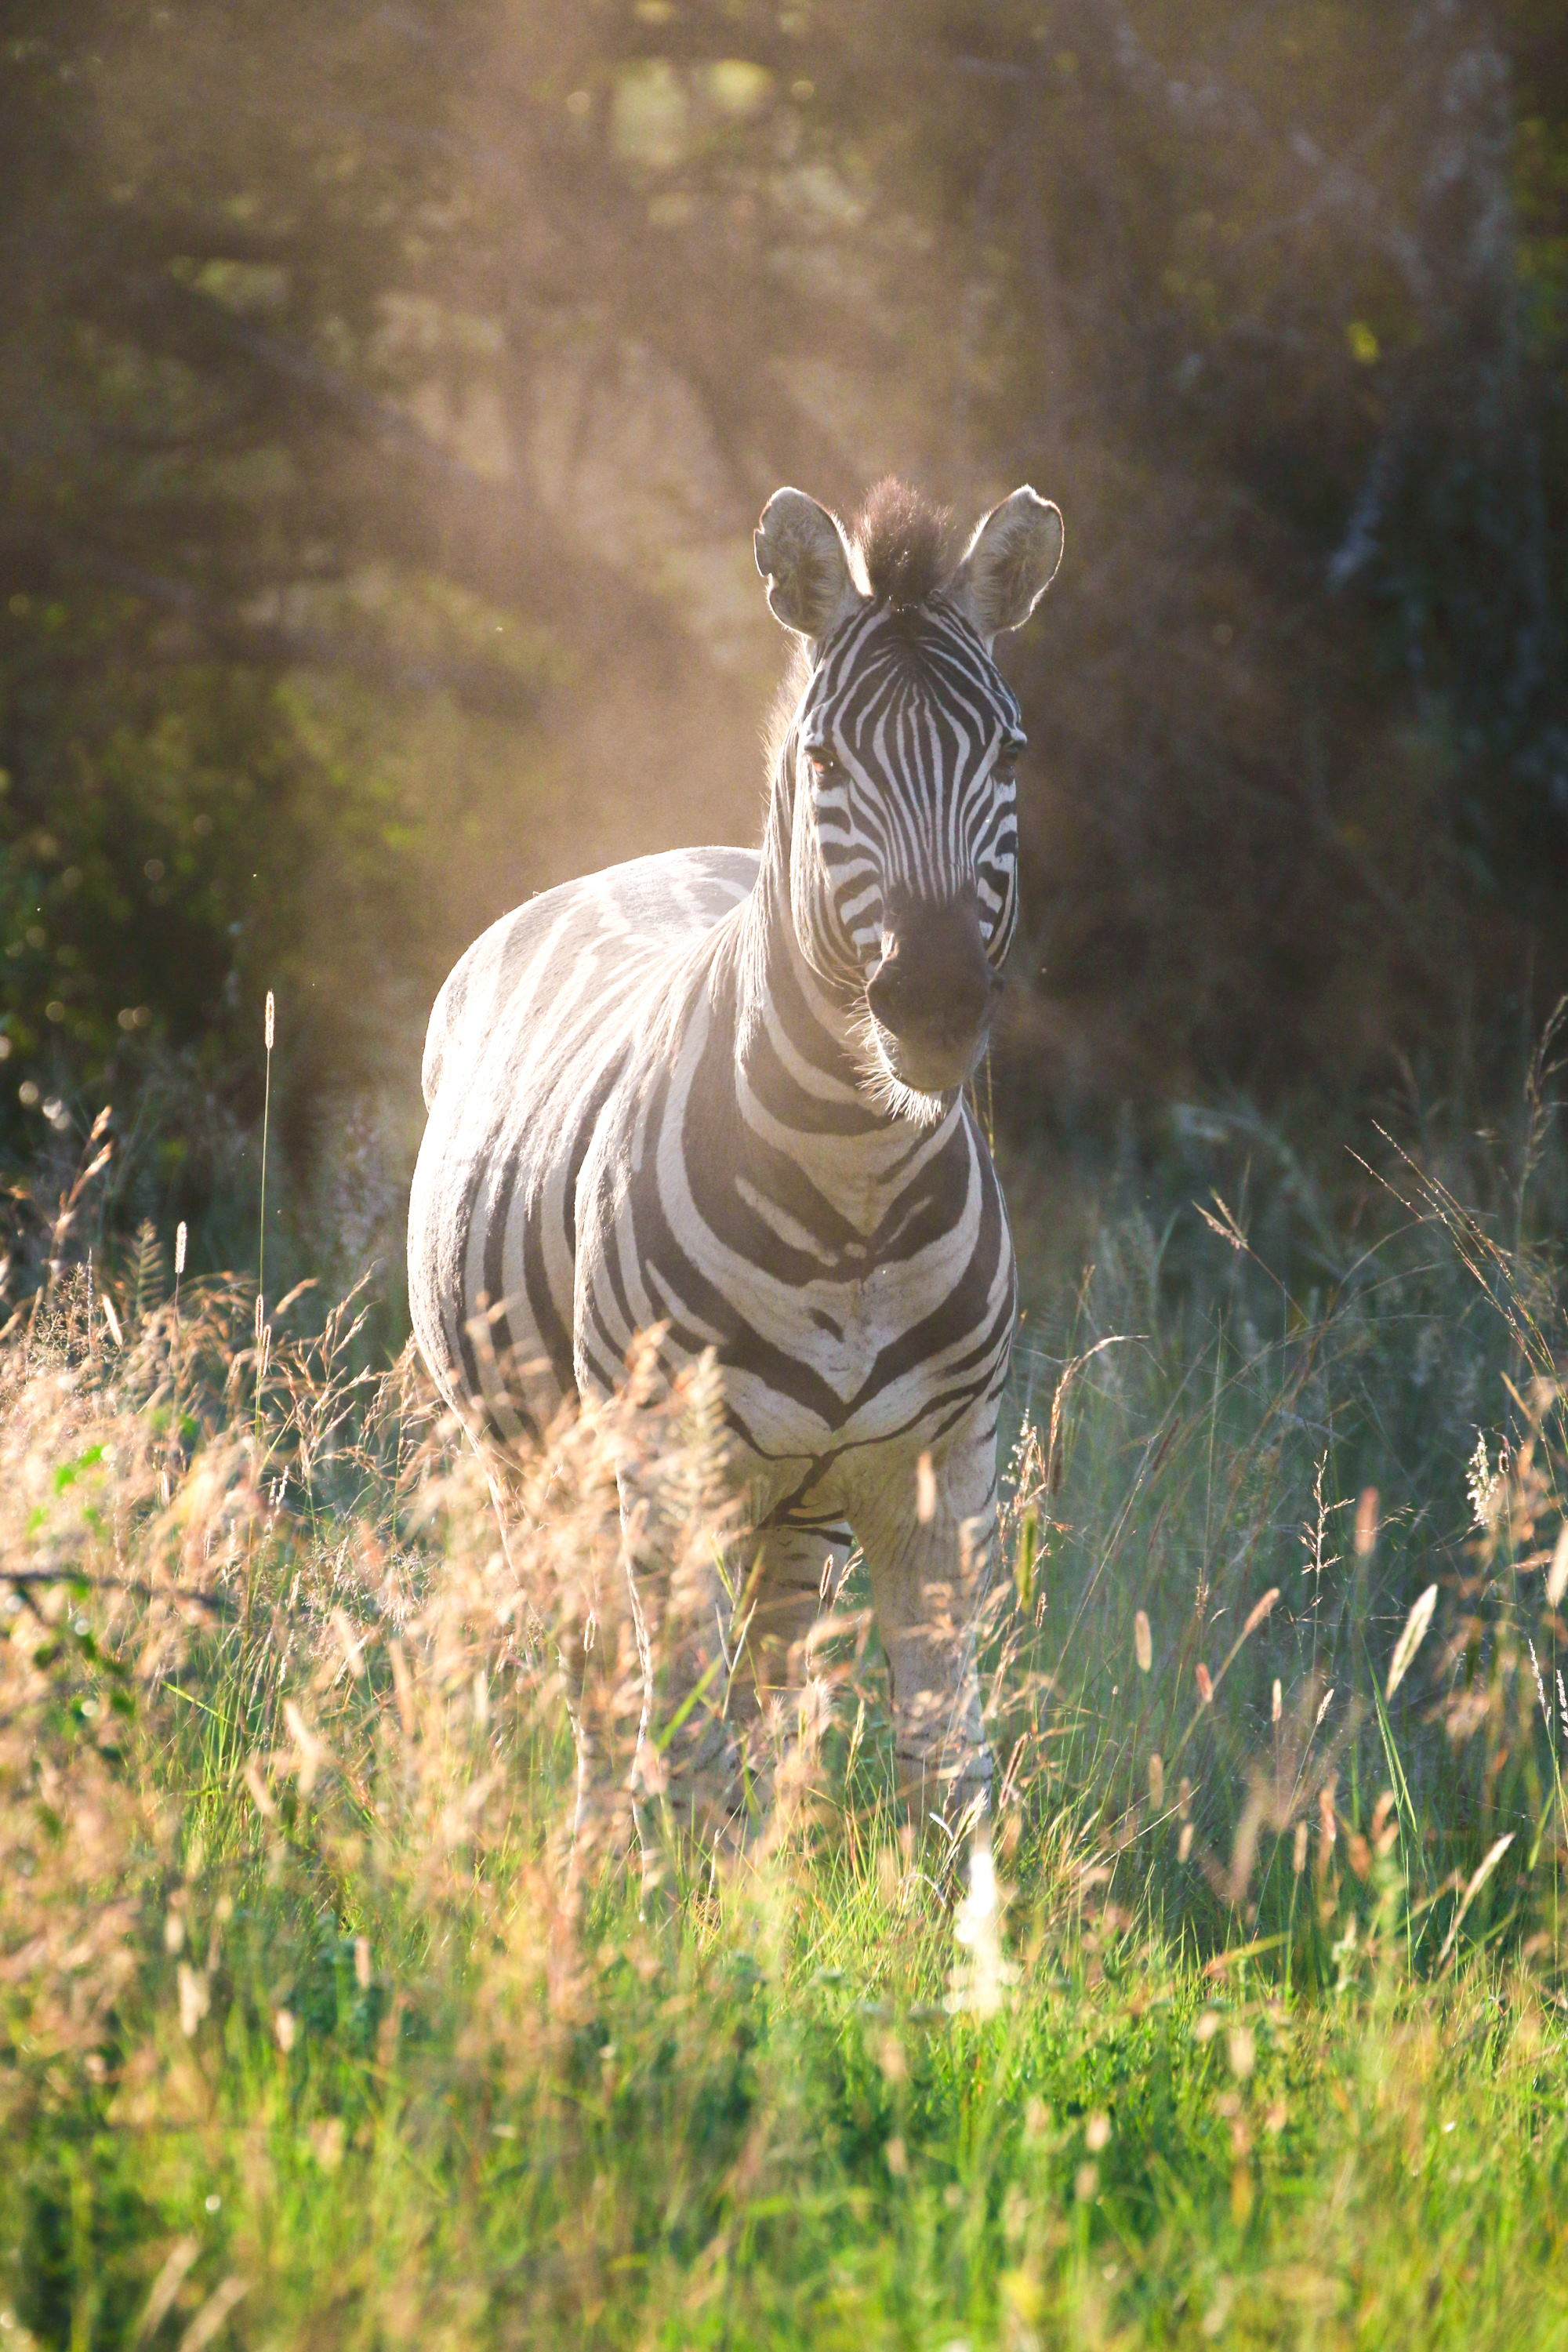 Zebra (Photo by Stephen Chan)